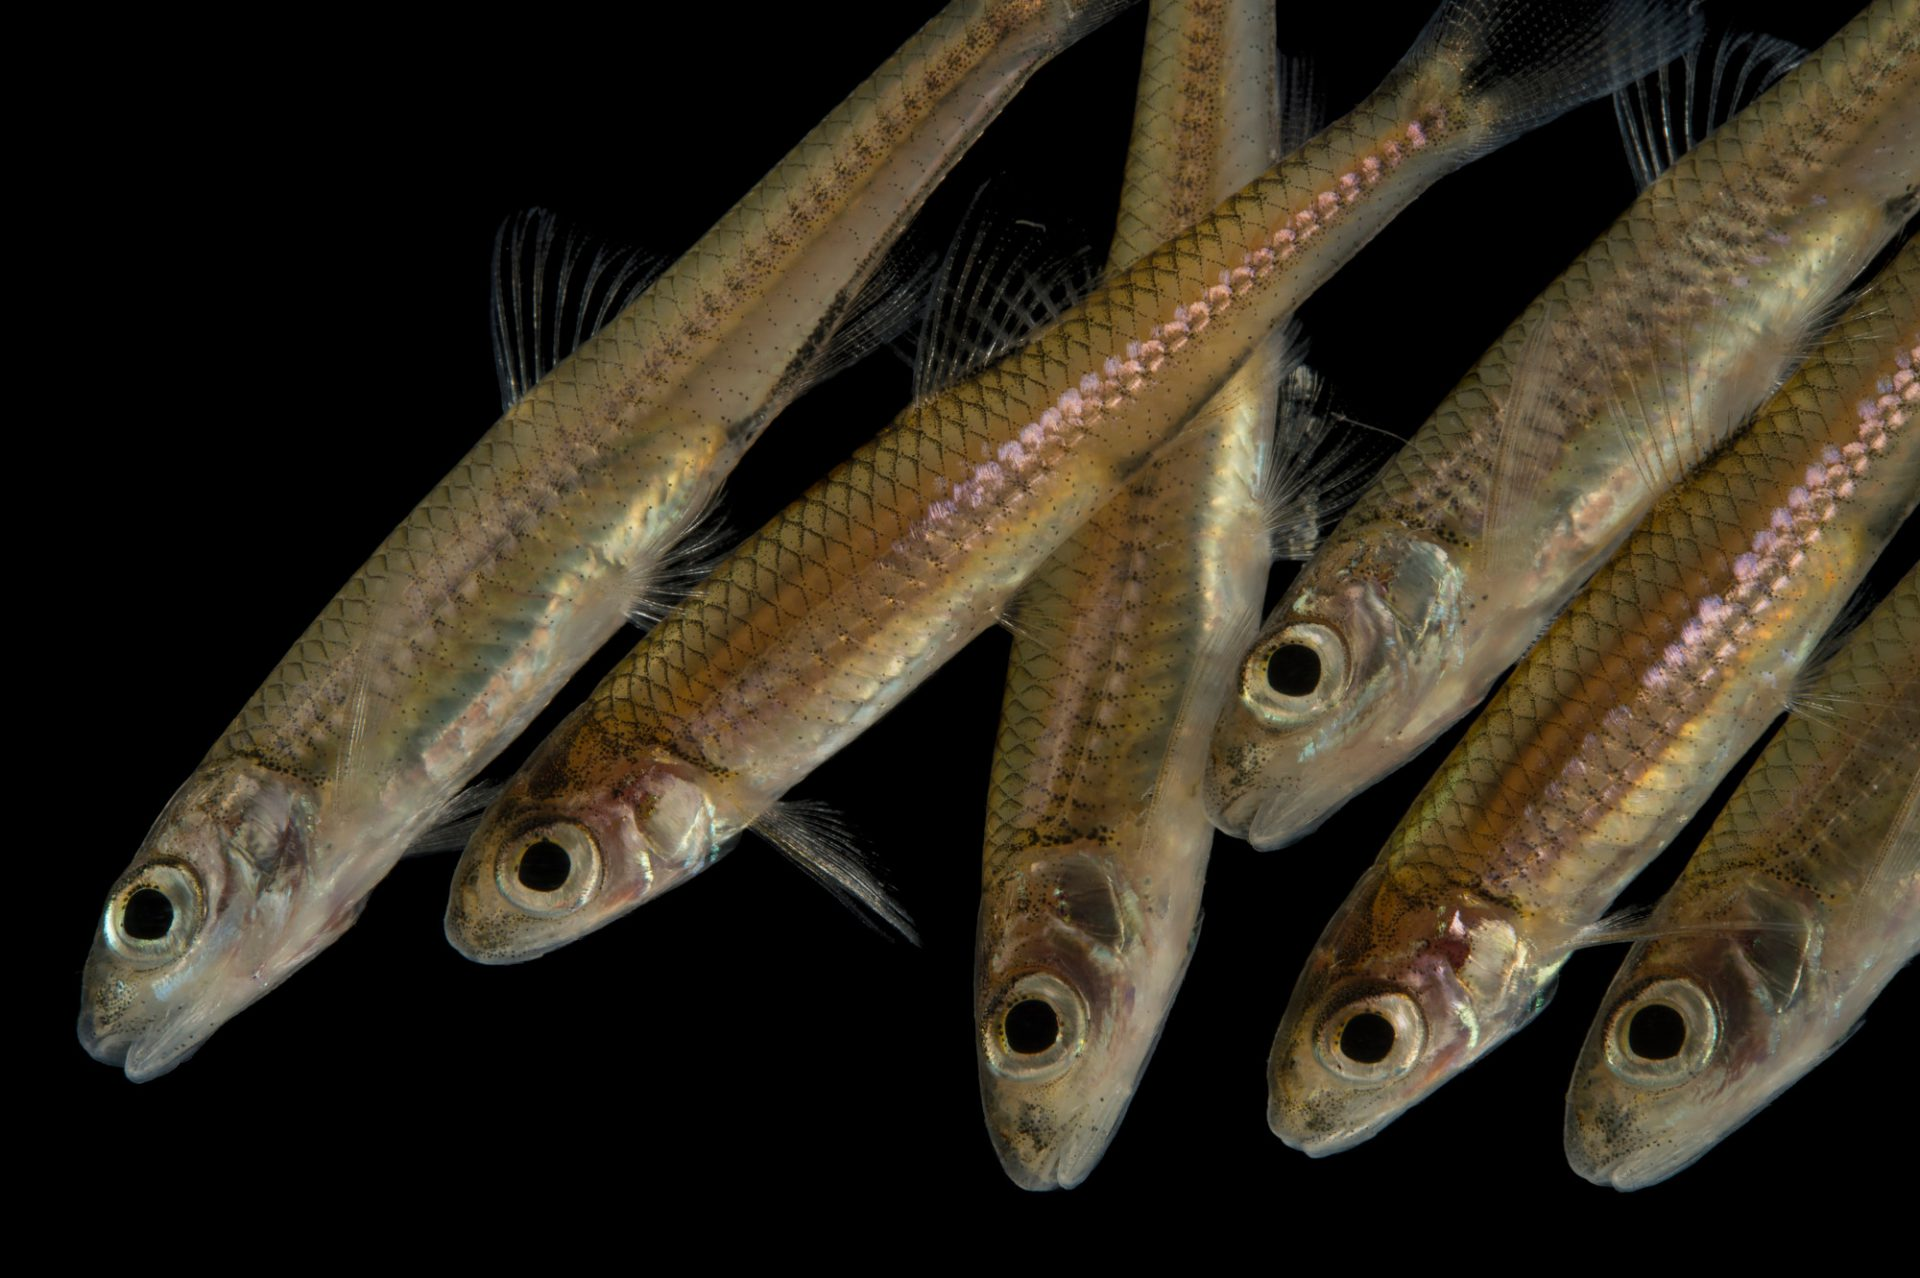 A school of sawfin shiners (Notropis sp.) at Conservation Fisheries in Knoxville, Tennessee.